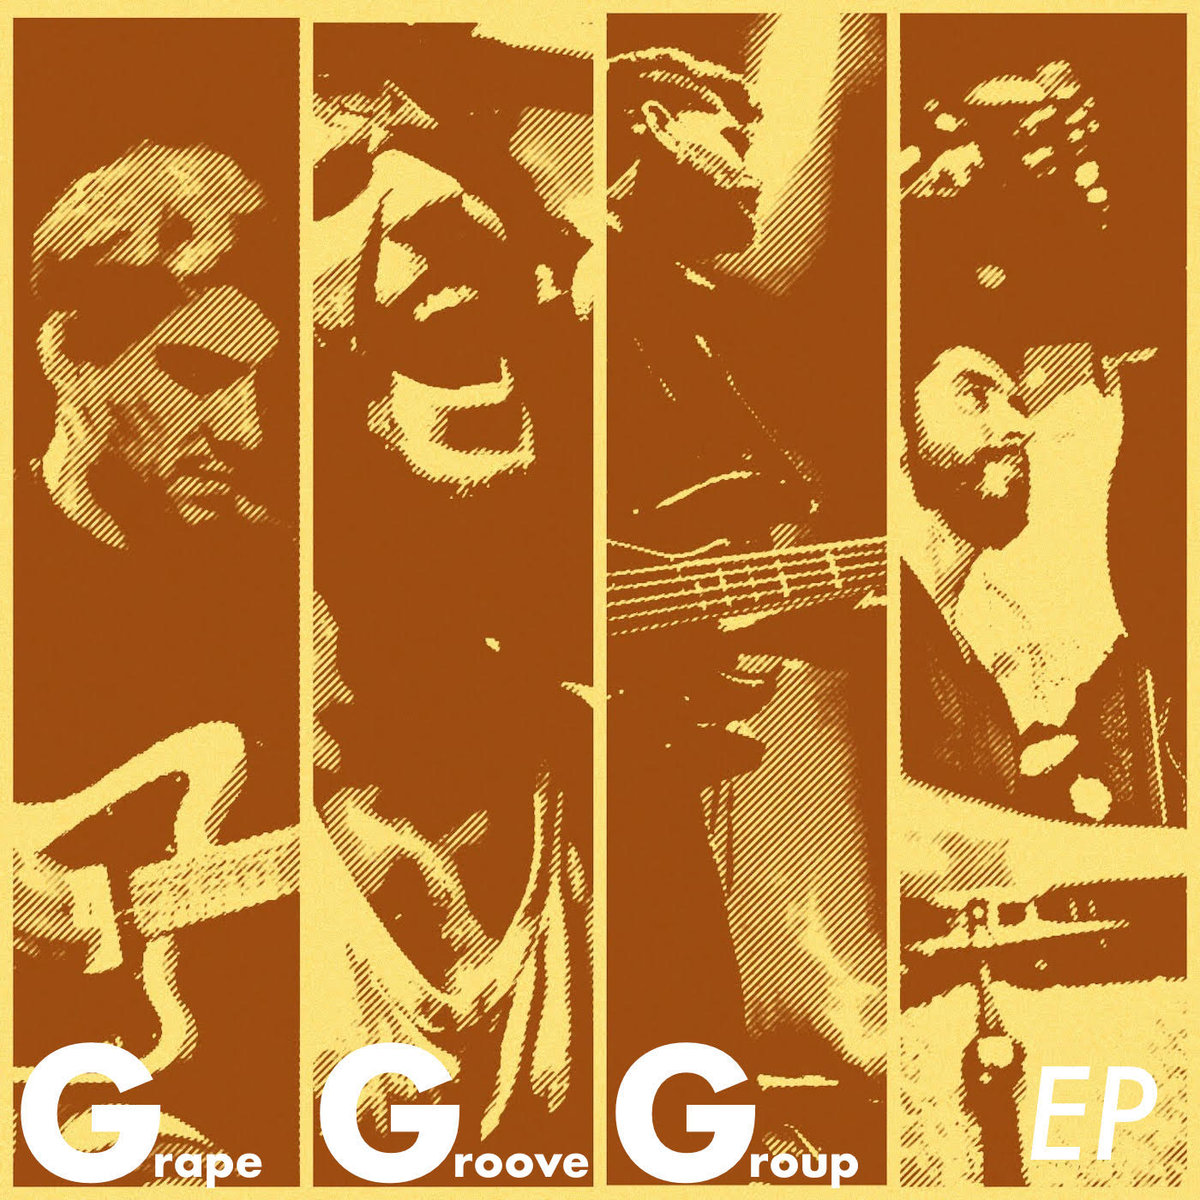 GRAPE GROOVE GROUP https://grapegroovegroup.bandcamp.com